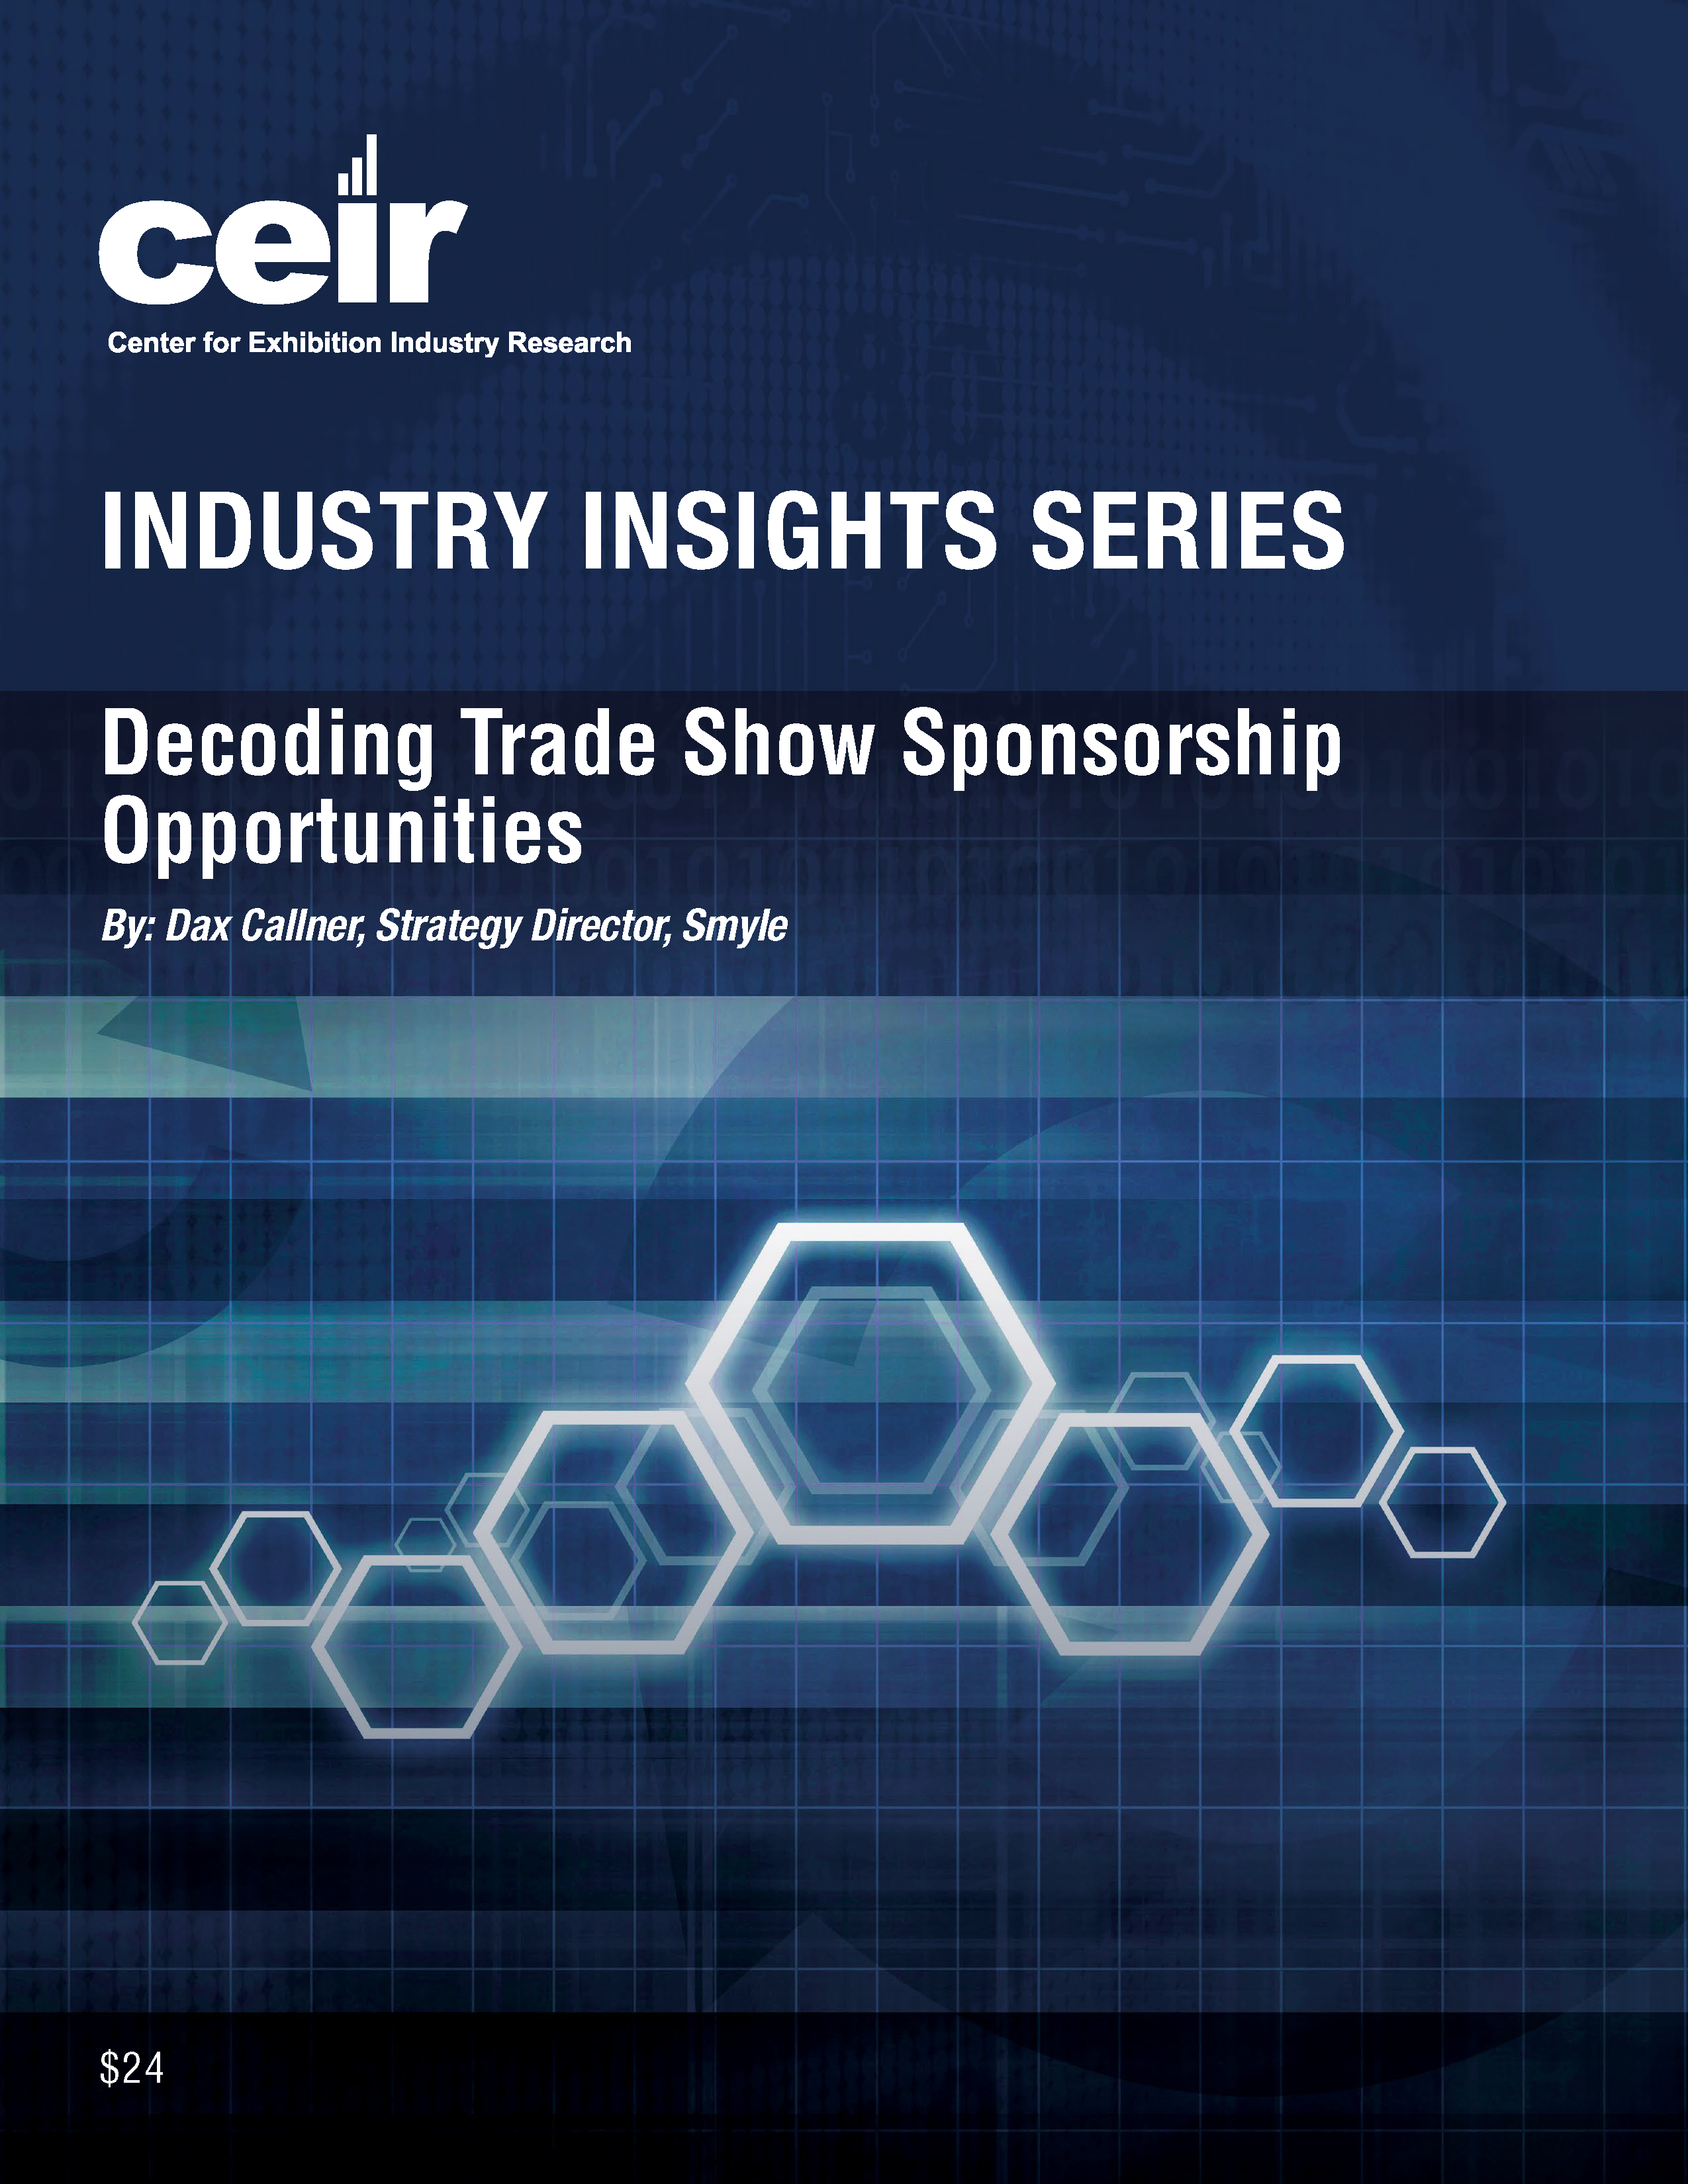 Decoding Trade Show Sponsorship Opportunities